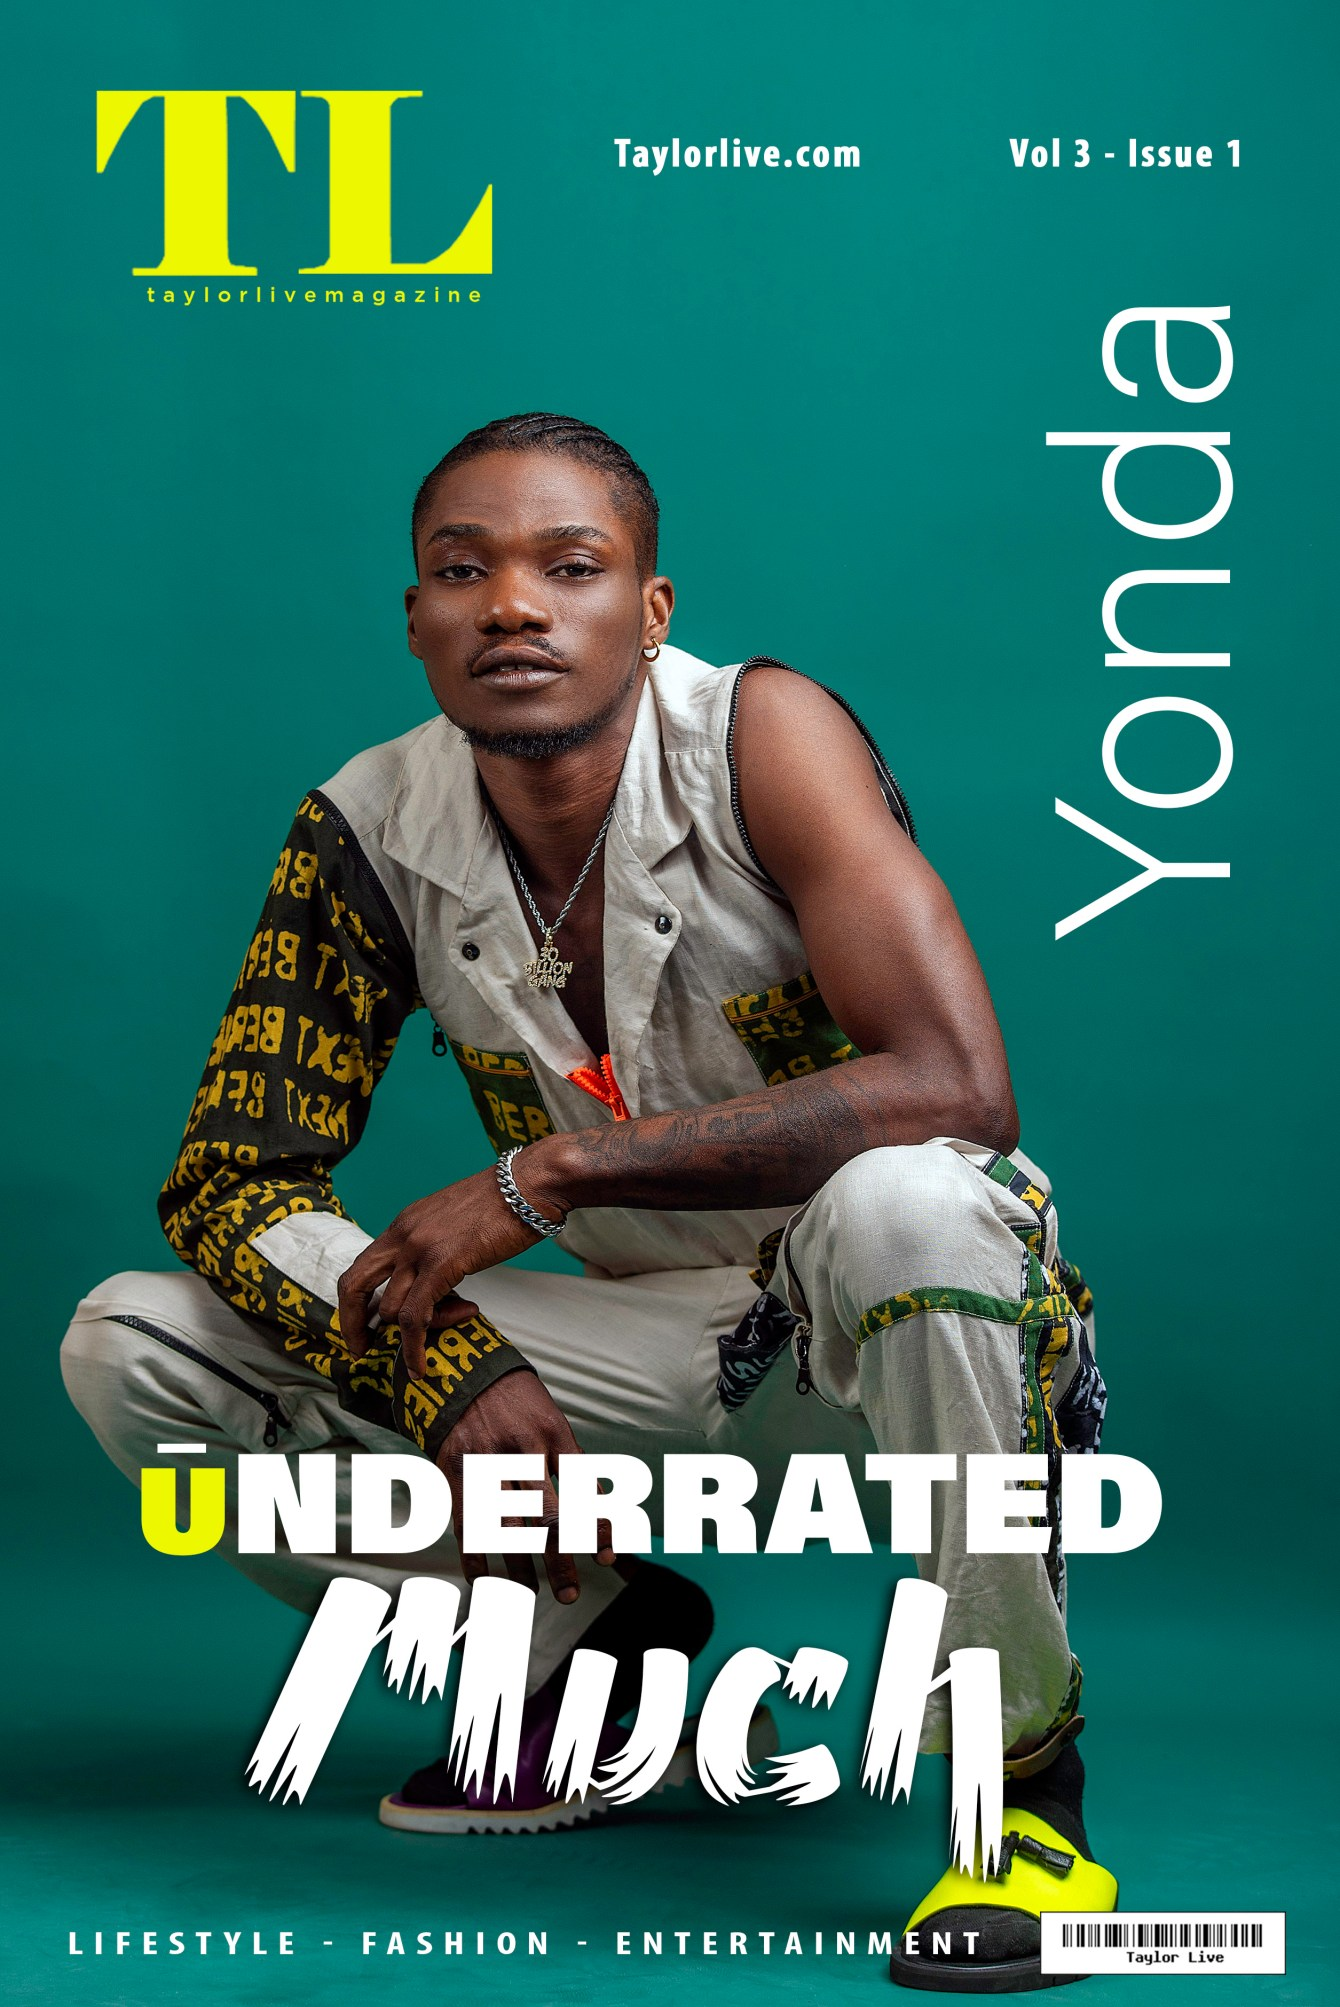 Underrated Much – Yonda Covers Taylor Live Magazine's Latest Issue